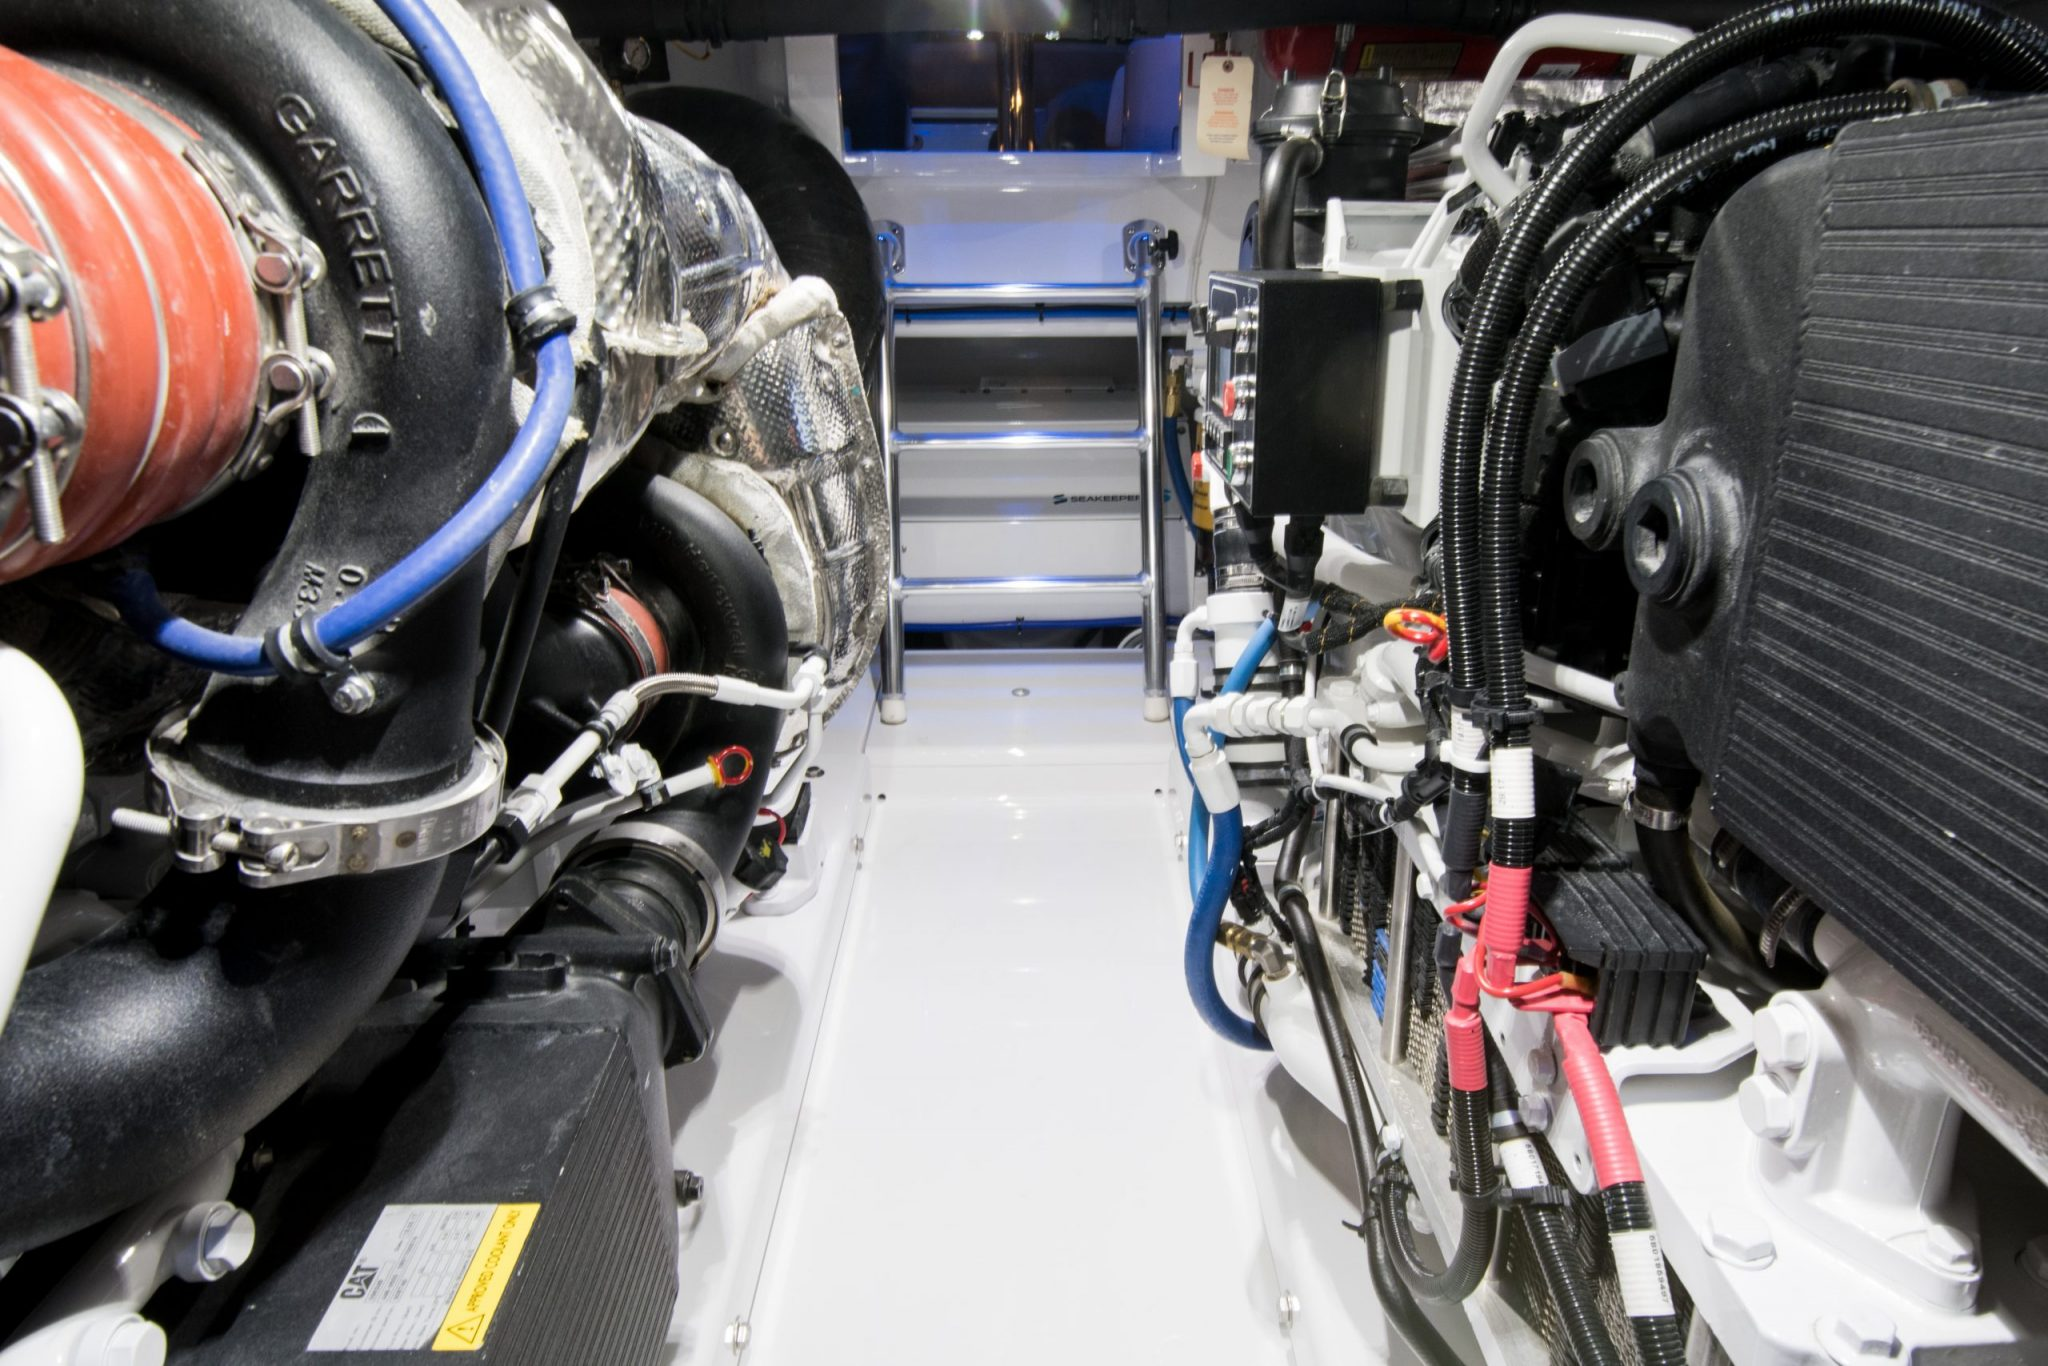 mechanical area of boat